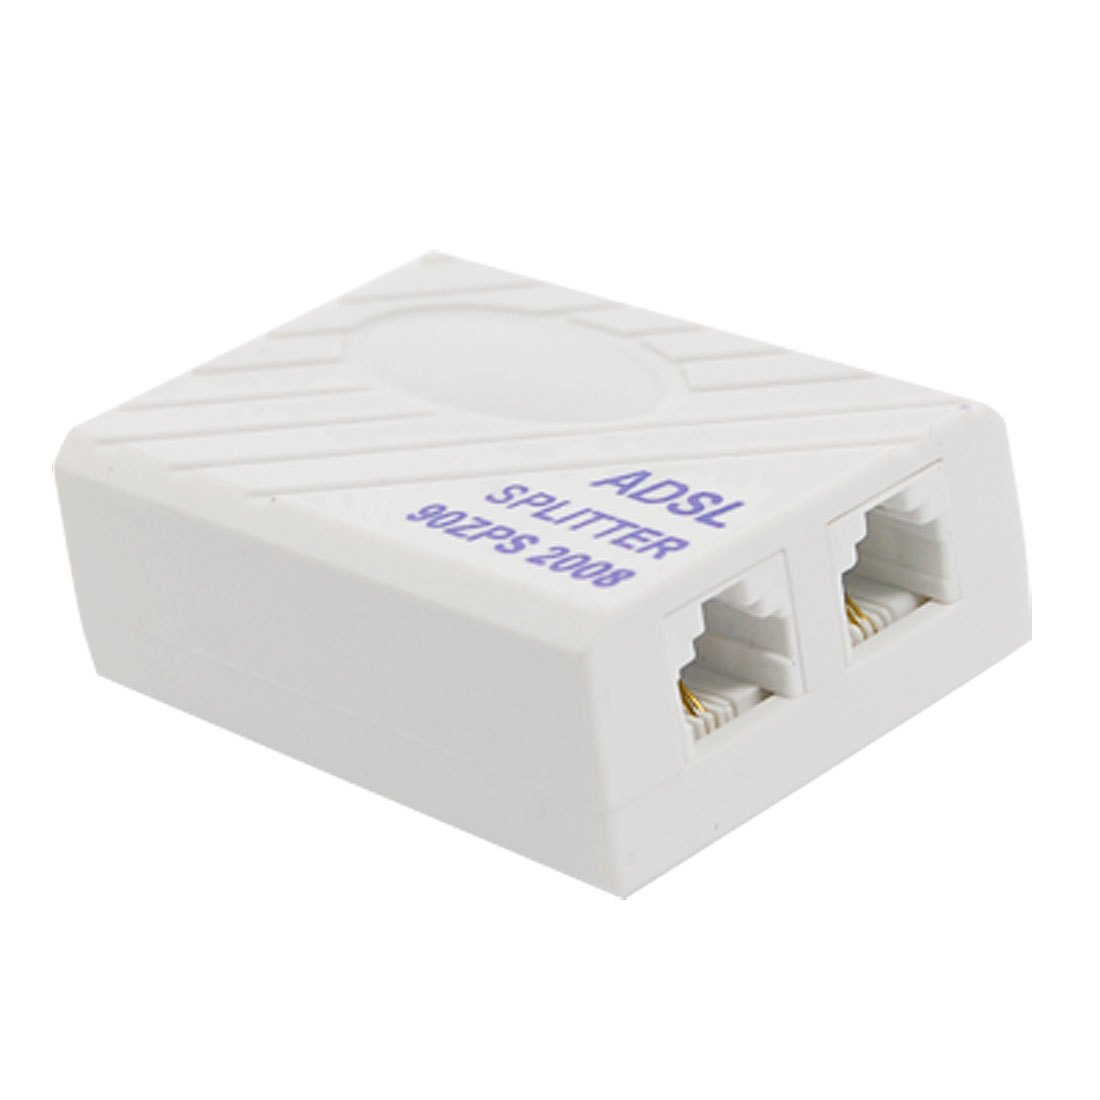 Phone Telephone ADSL Modem 6P2C RJ11 Line Splitter Filter White